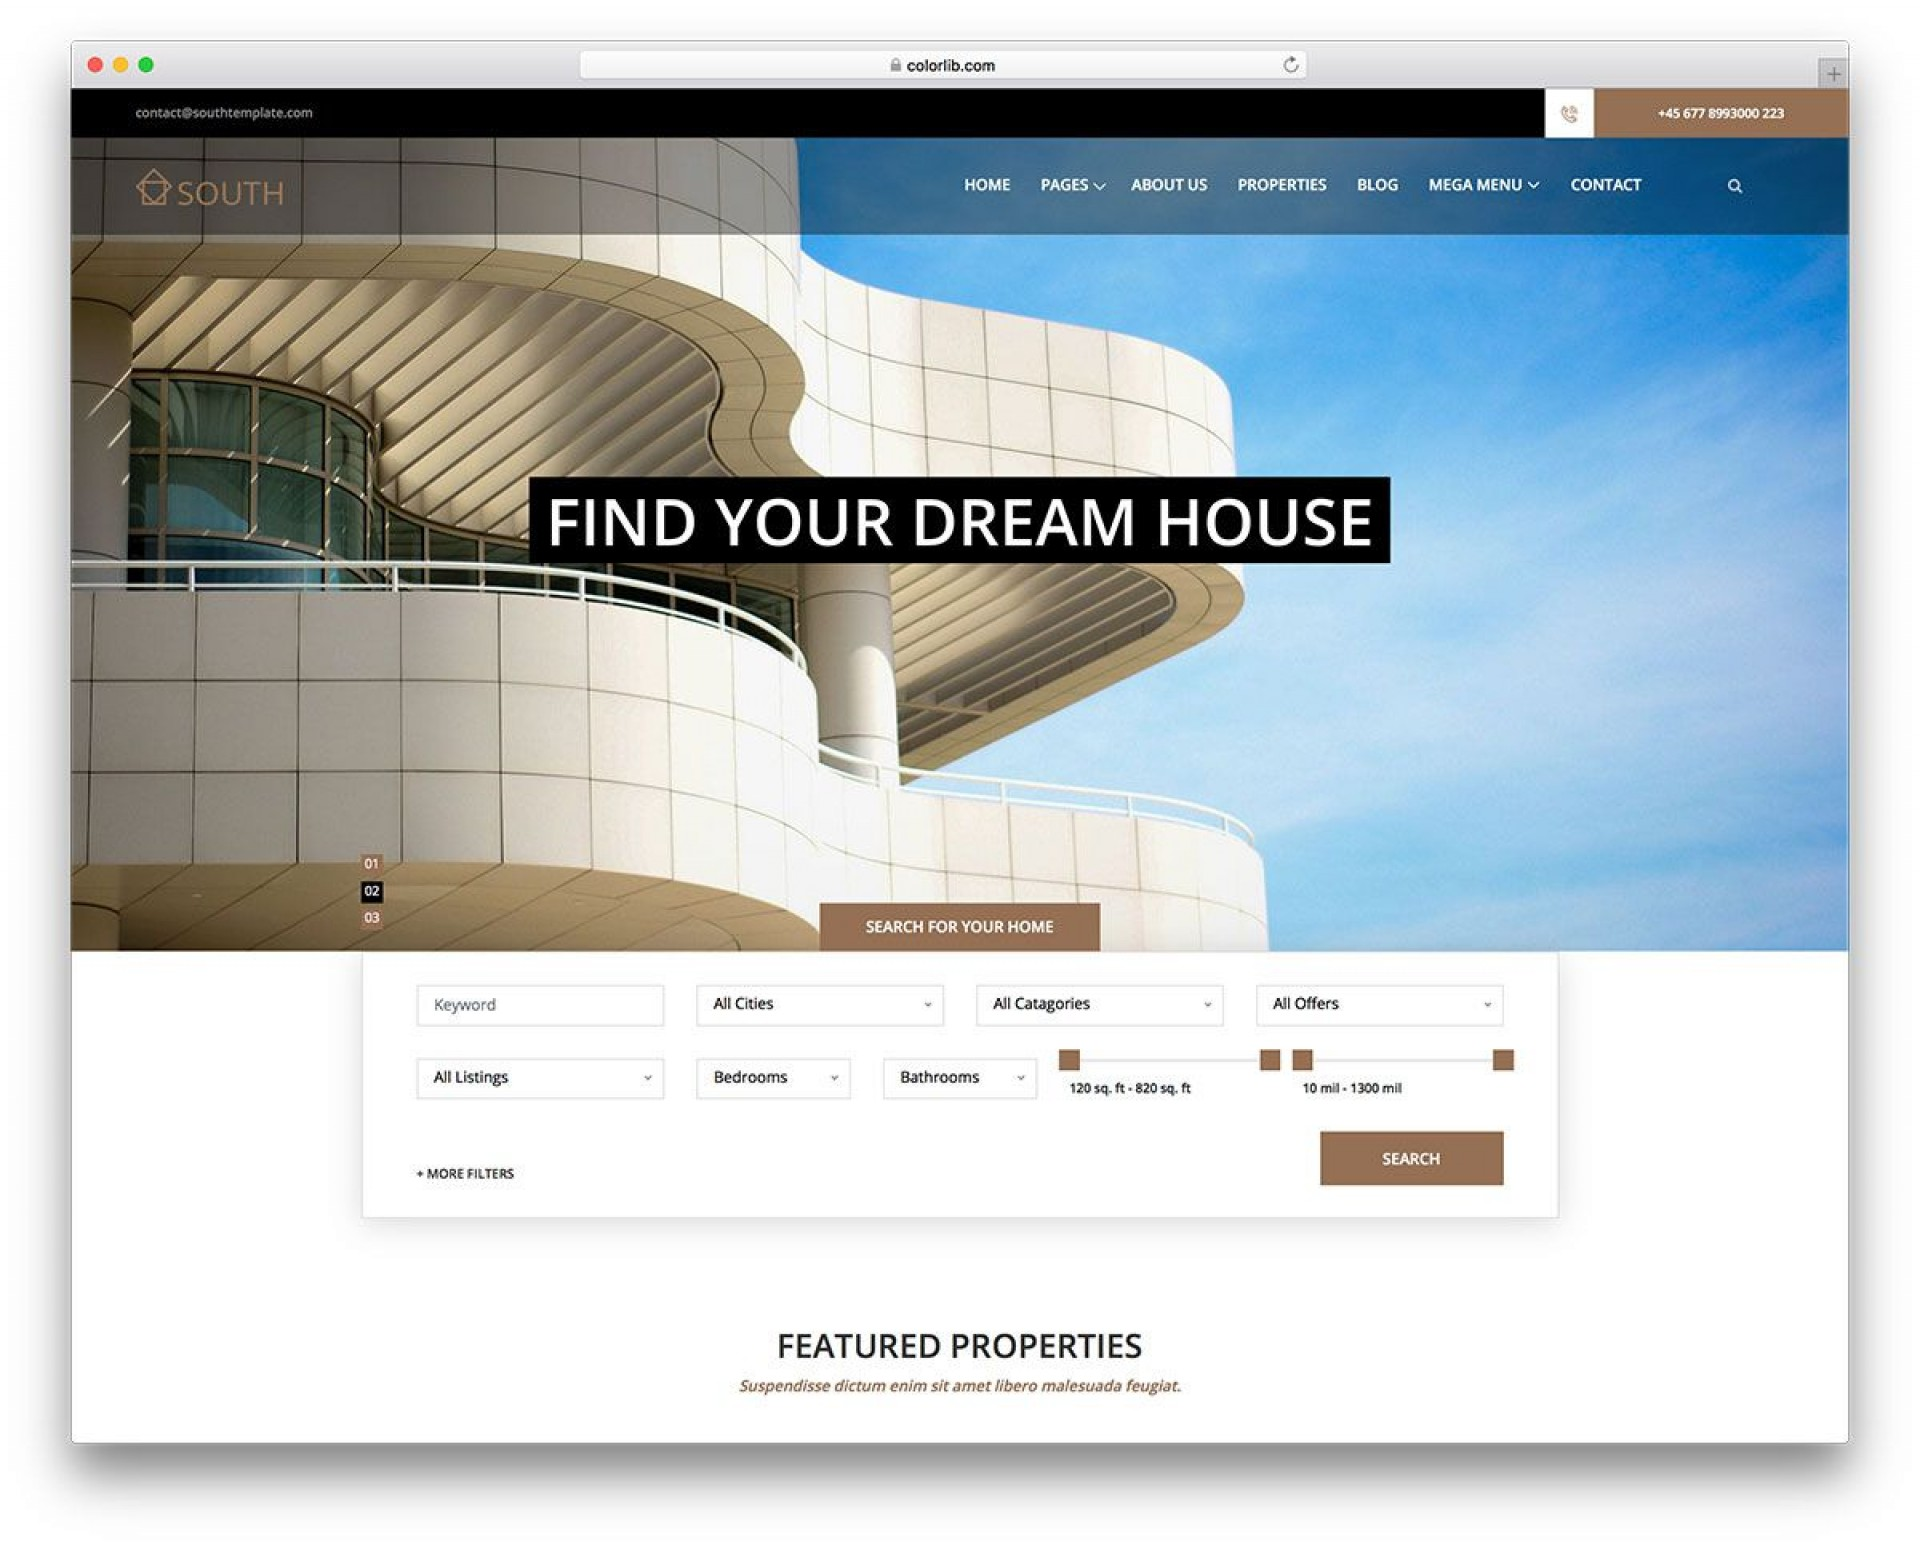 009 Striking Real Estate Website Template Highest Quality  Templates Bootstrap Free Html5 Best Wordpres1920